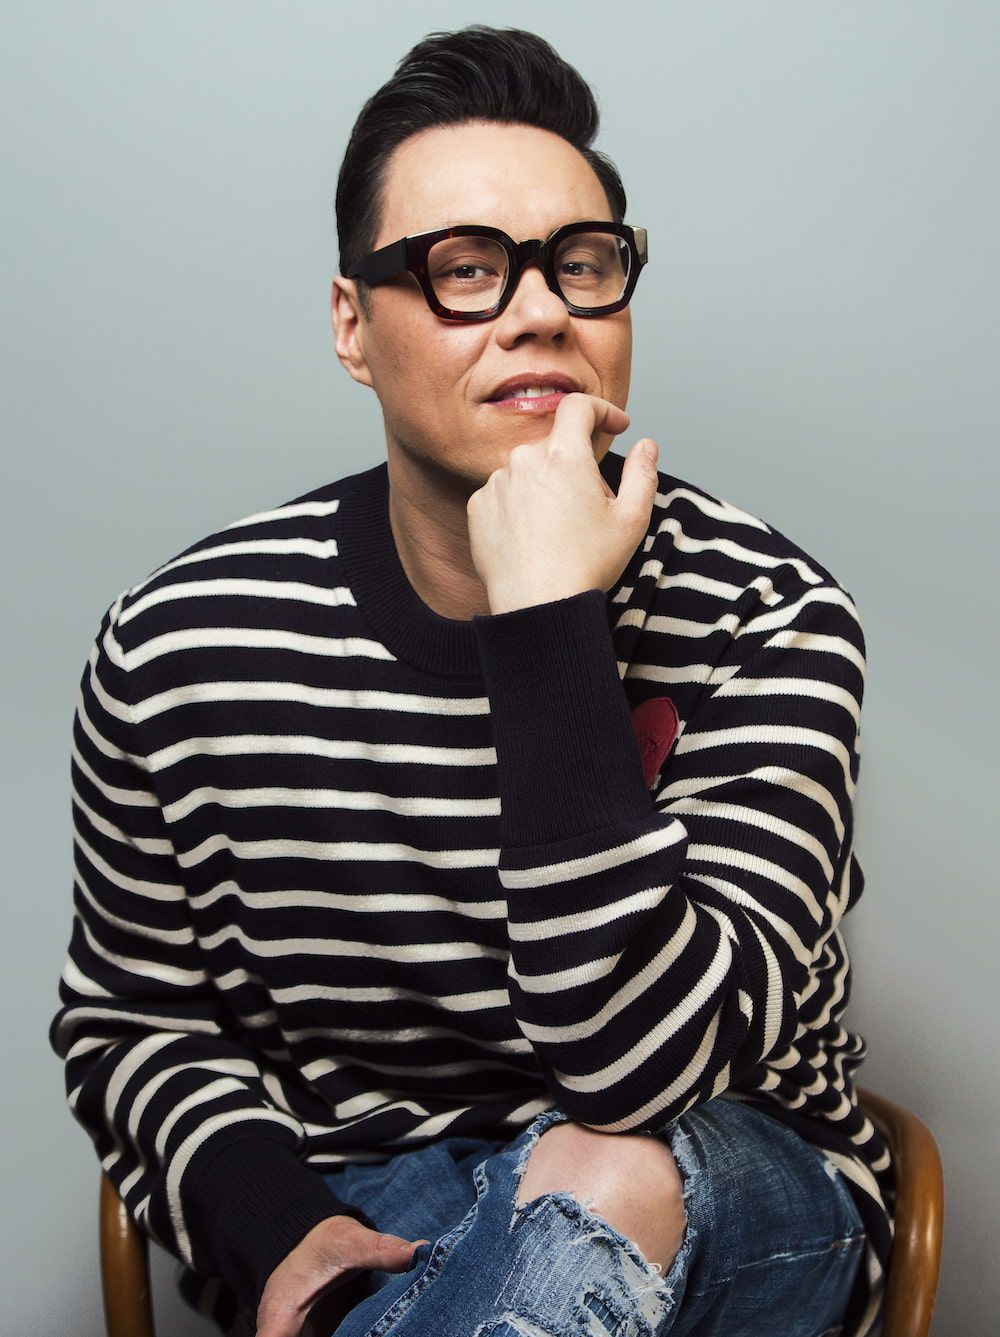 Gok Wan sitting in a chair with his chin resting on his hand